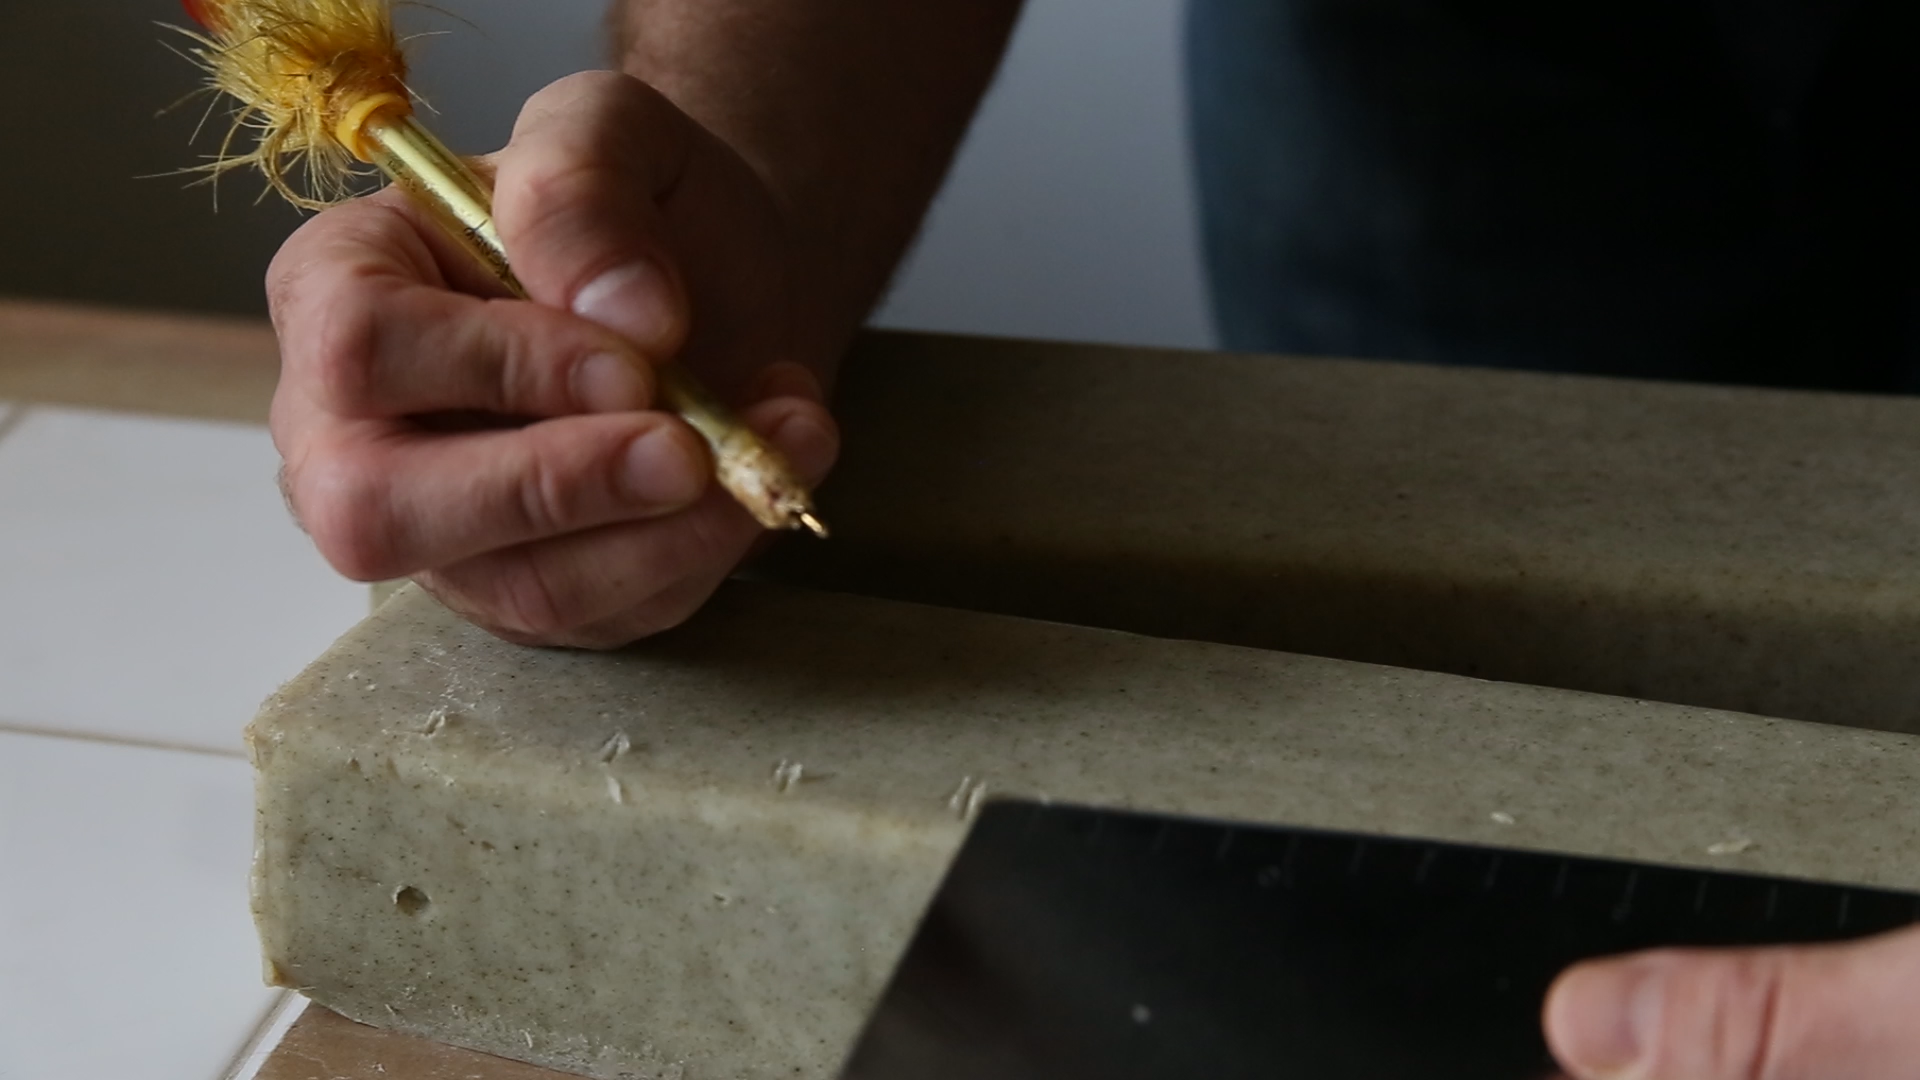 While still soft enough to cut easily, Shamus makes markings on the dried bar. (Ivana Rihter, 14 East Magazine)